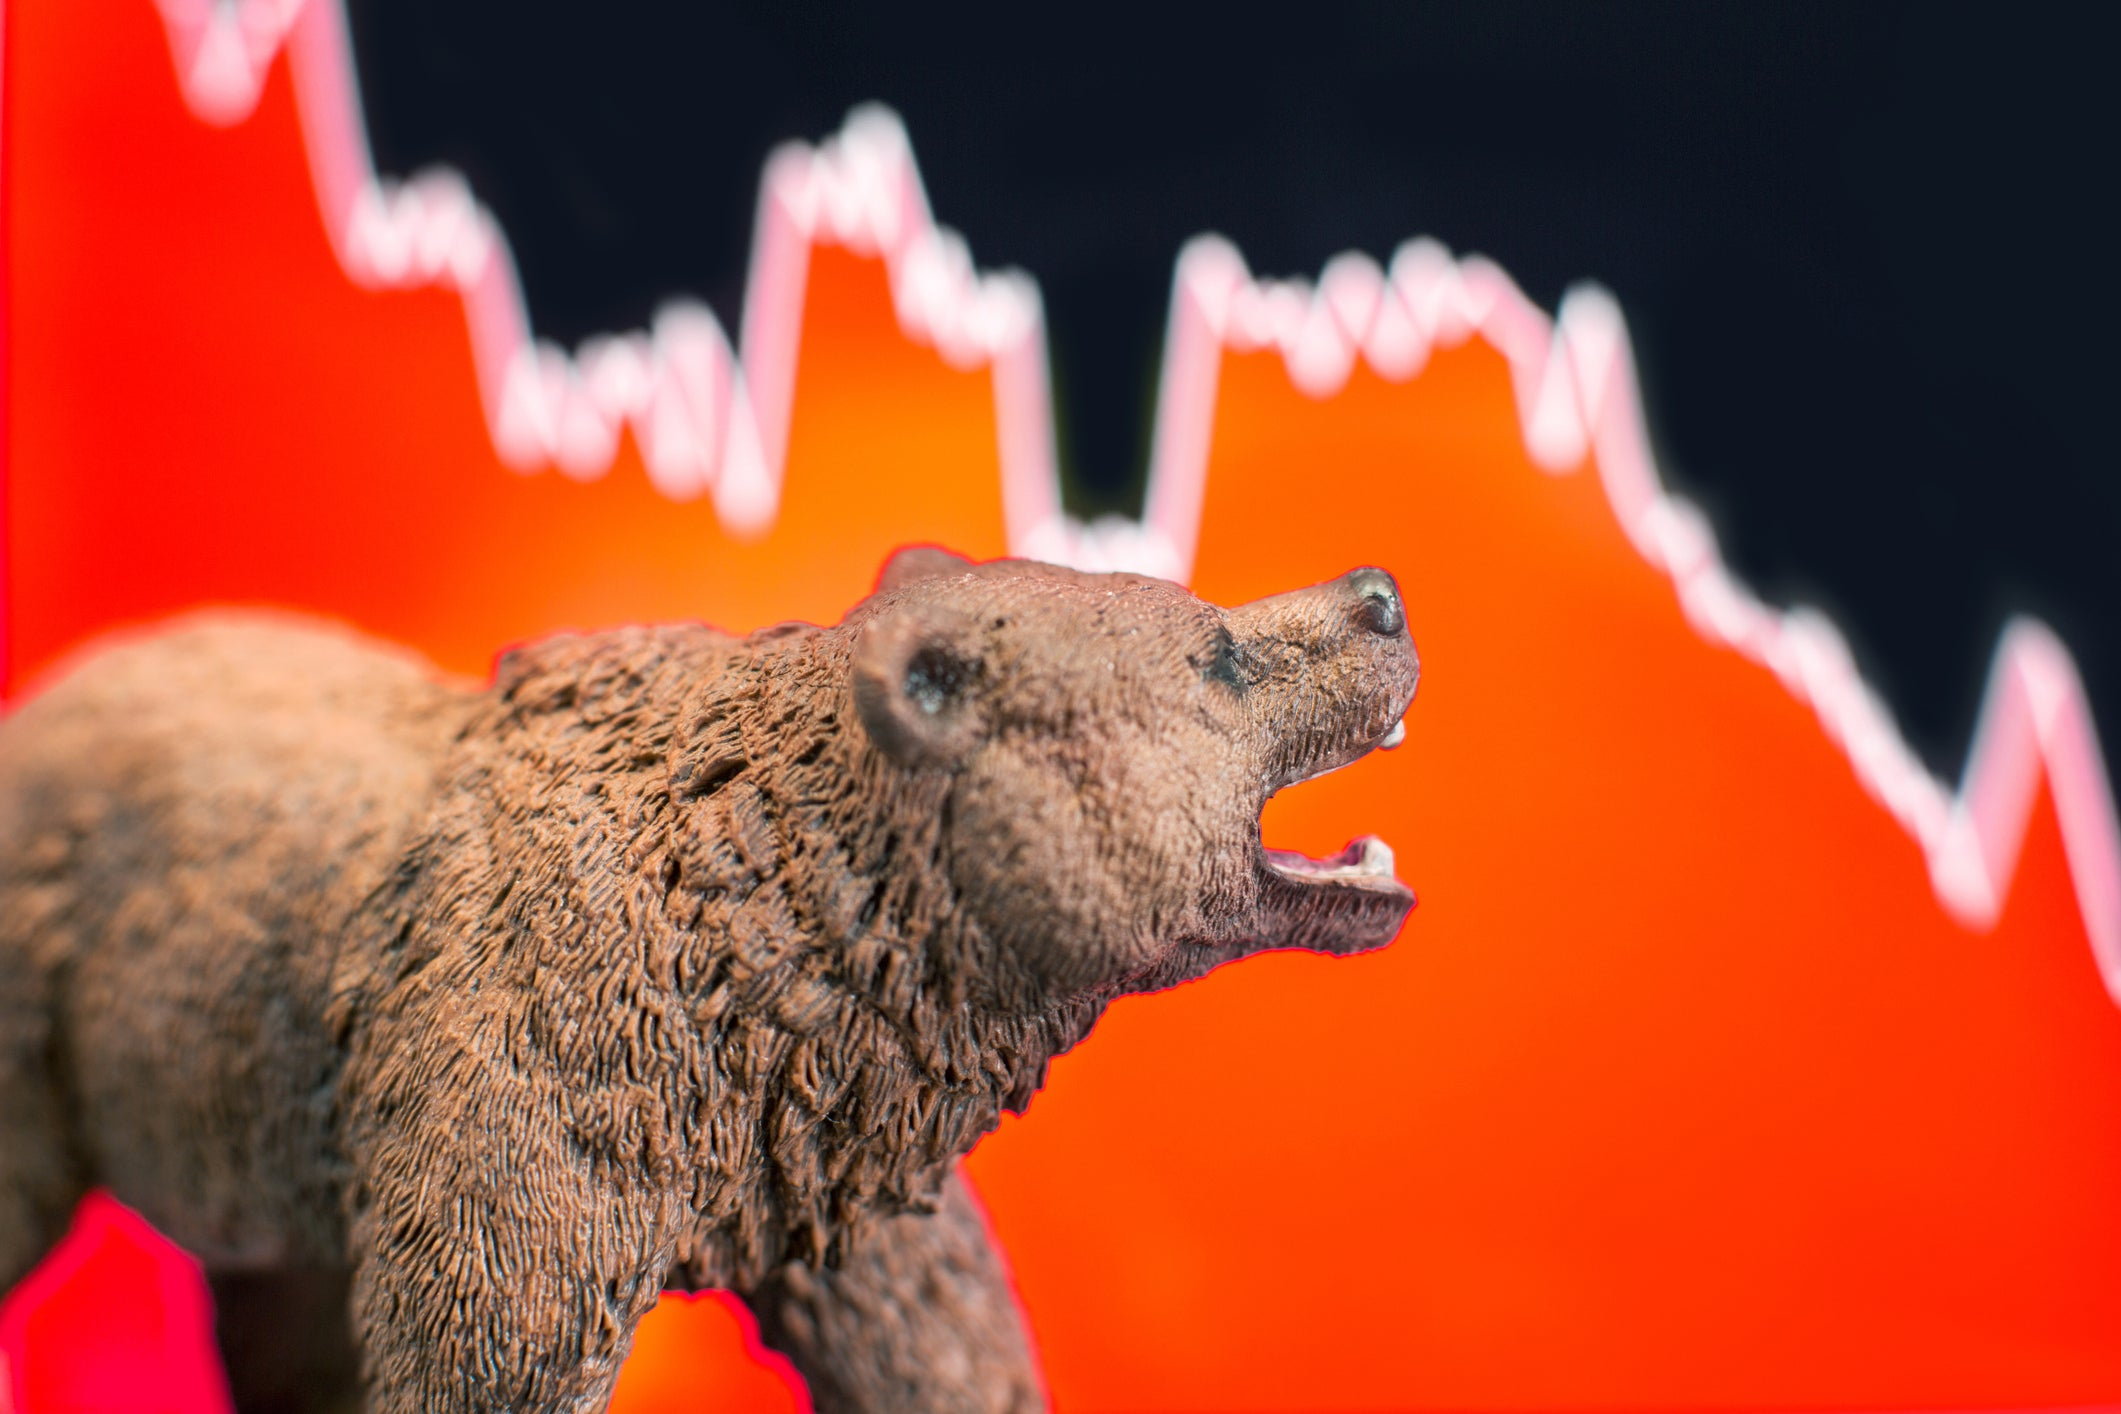 5 No-Brainer Buys During a Stock Market Crash | The Motley Fool